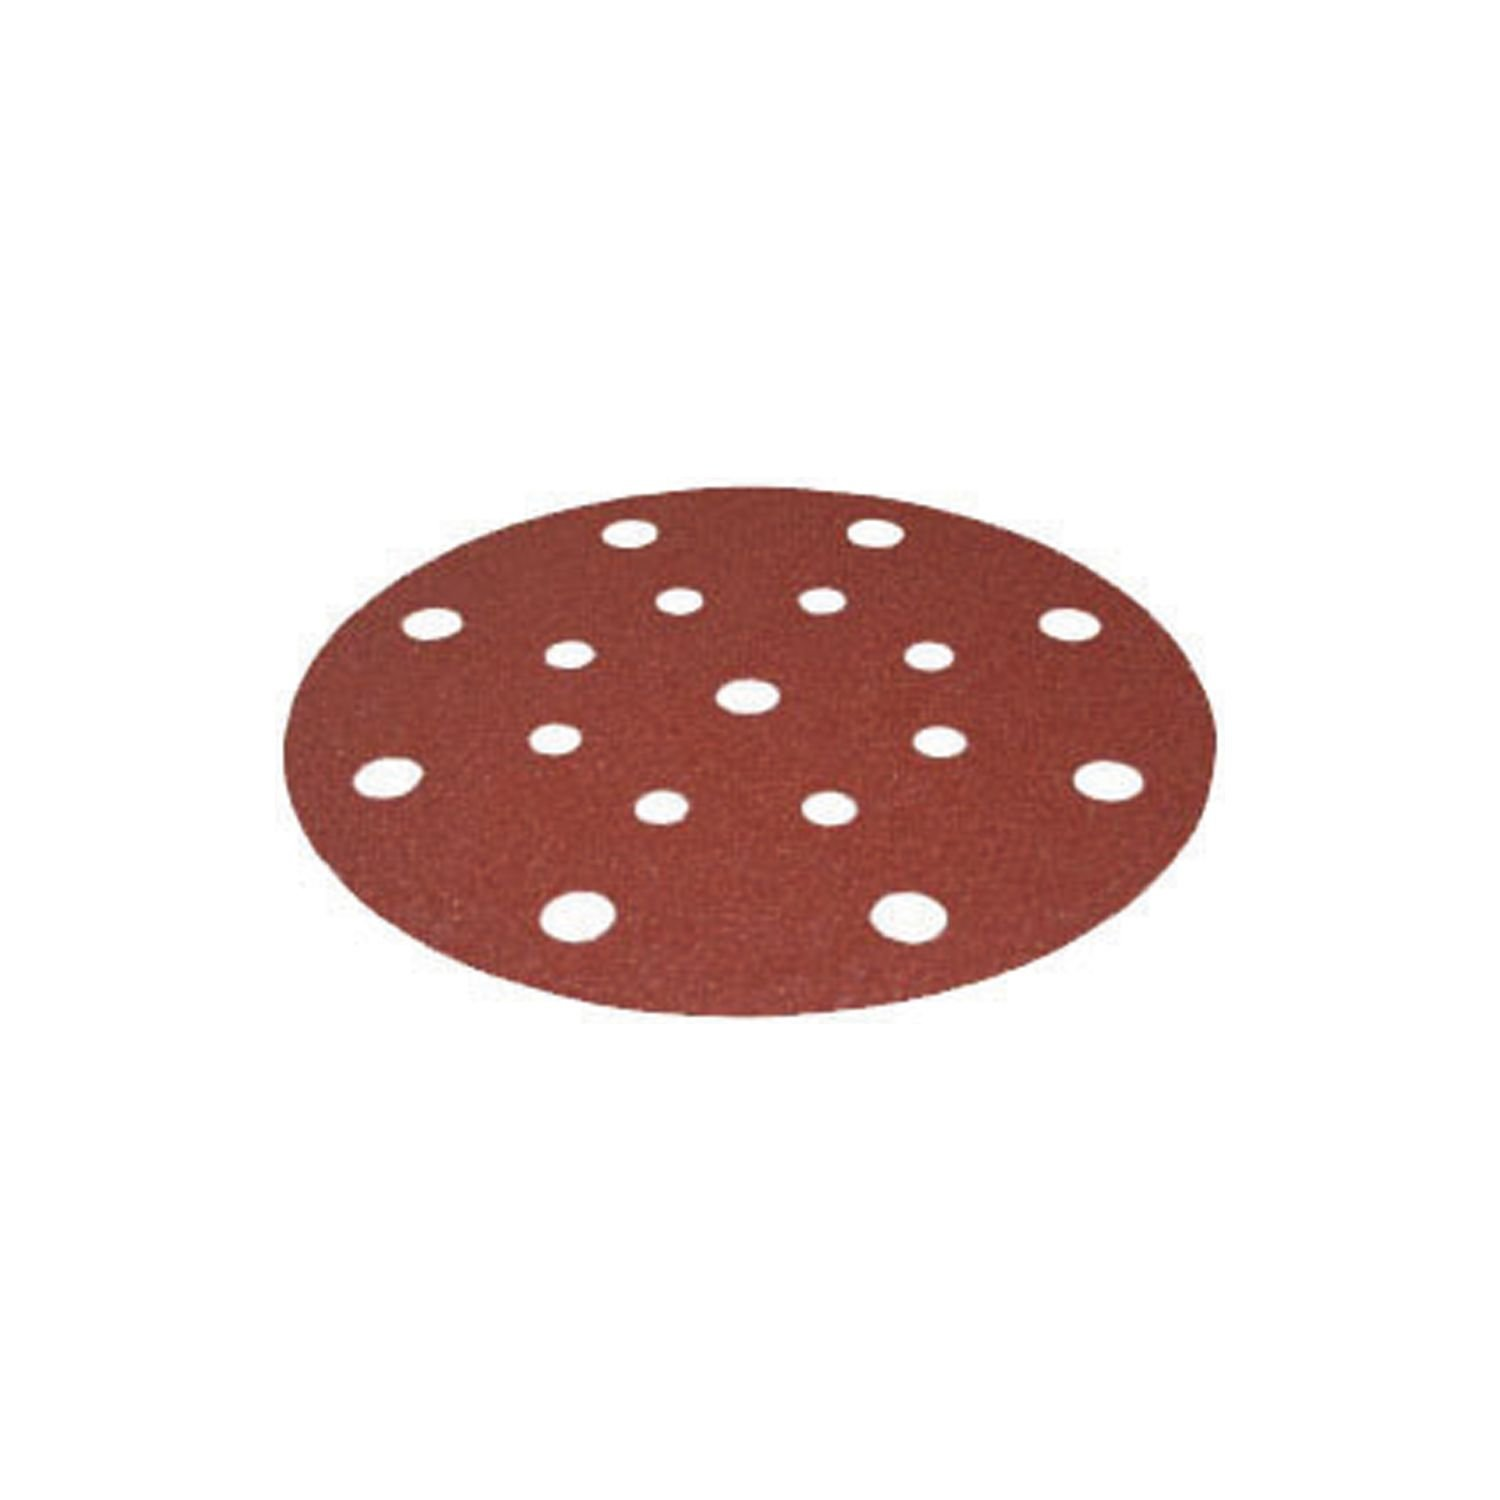 Festool 499121 P120 Grit Rubin 2 Abrasives for RO 150/ETS 150 Sander, 50-Pack